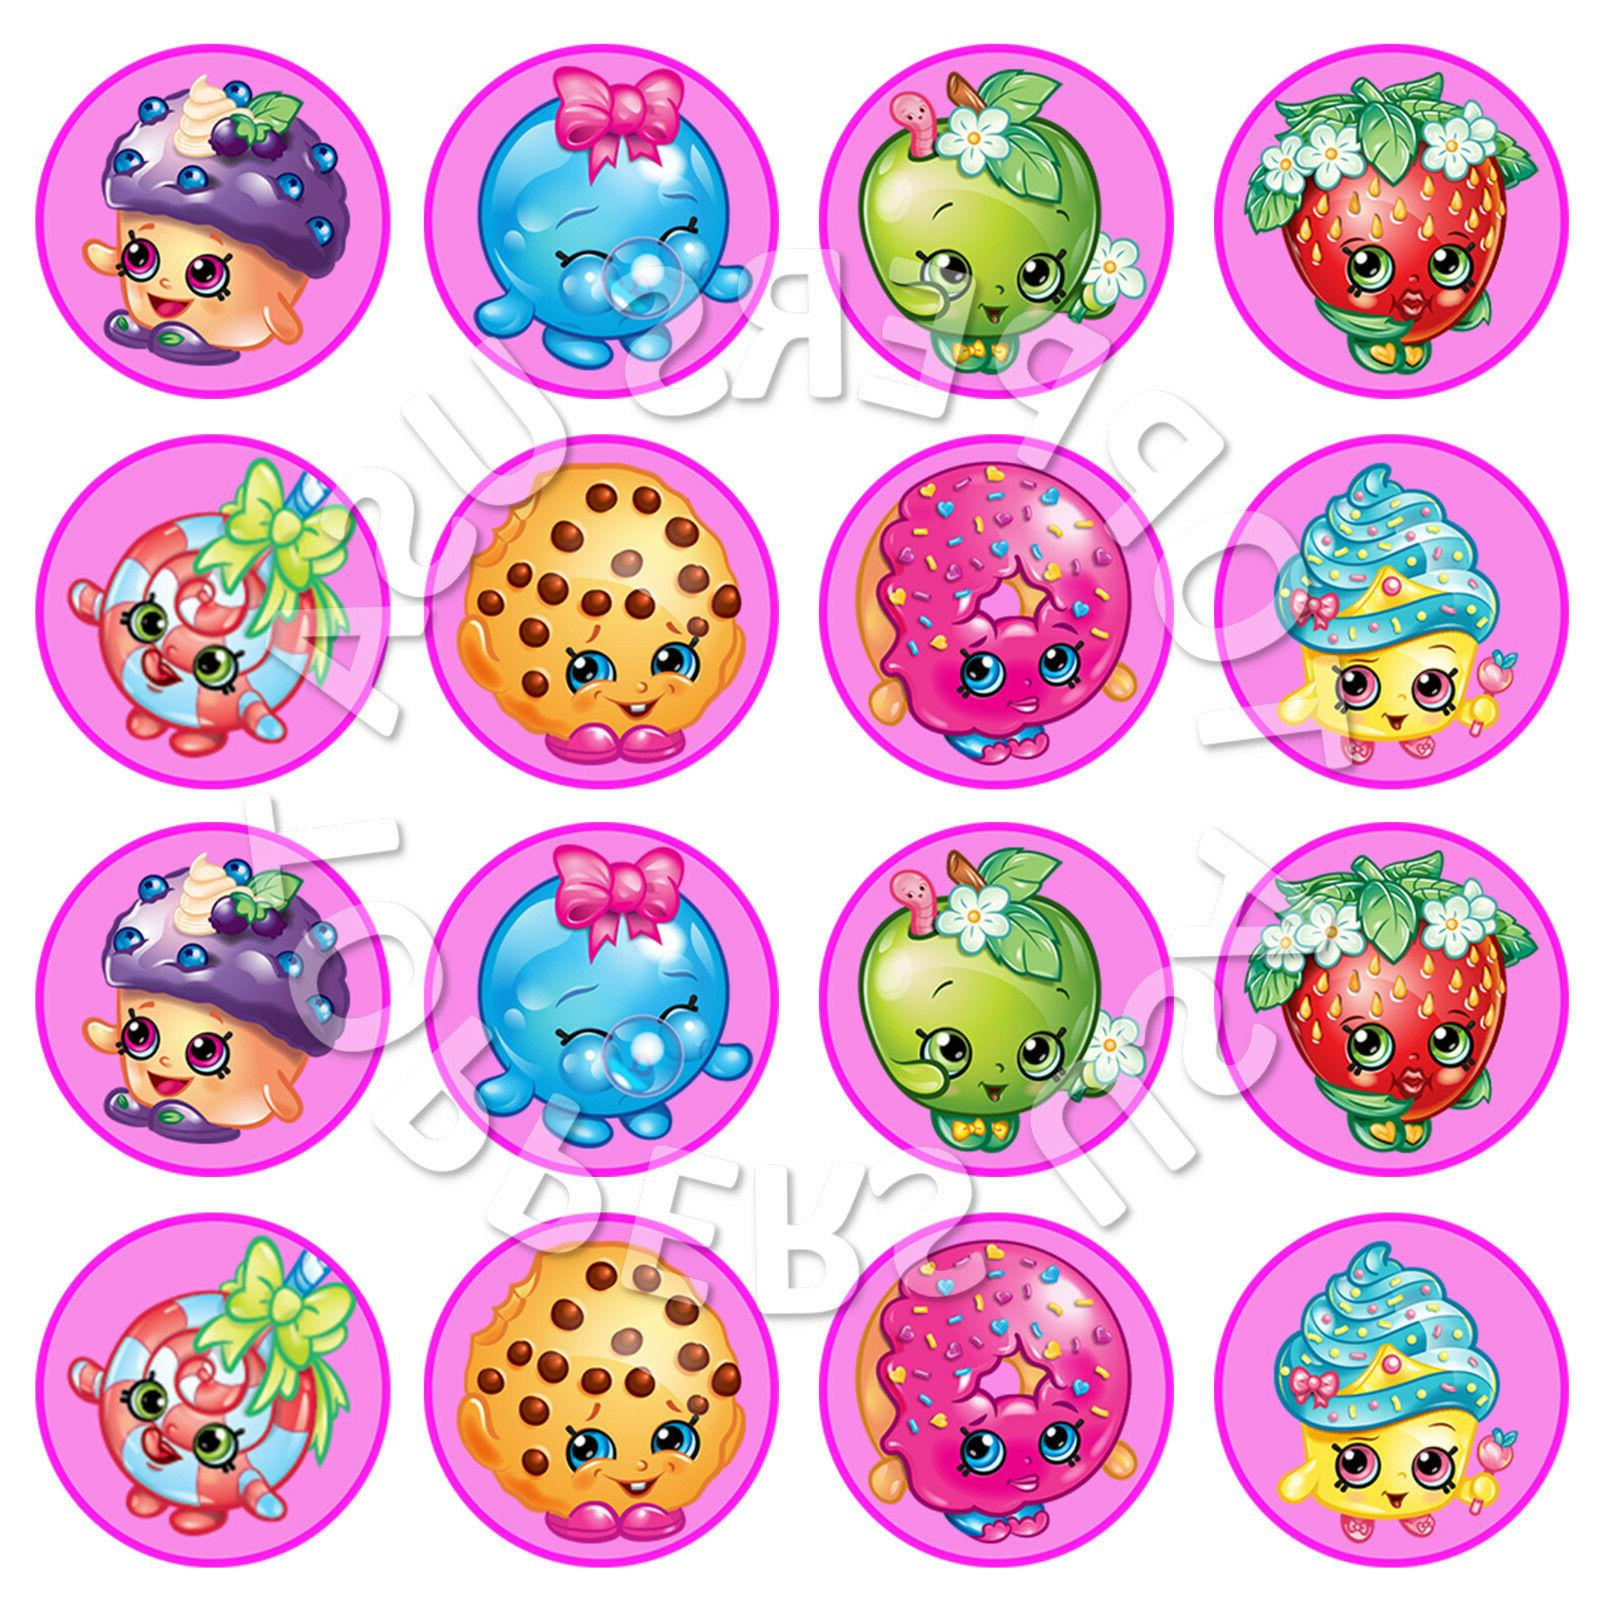 16x edible shopkins birthday party cupcake toppers